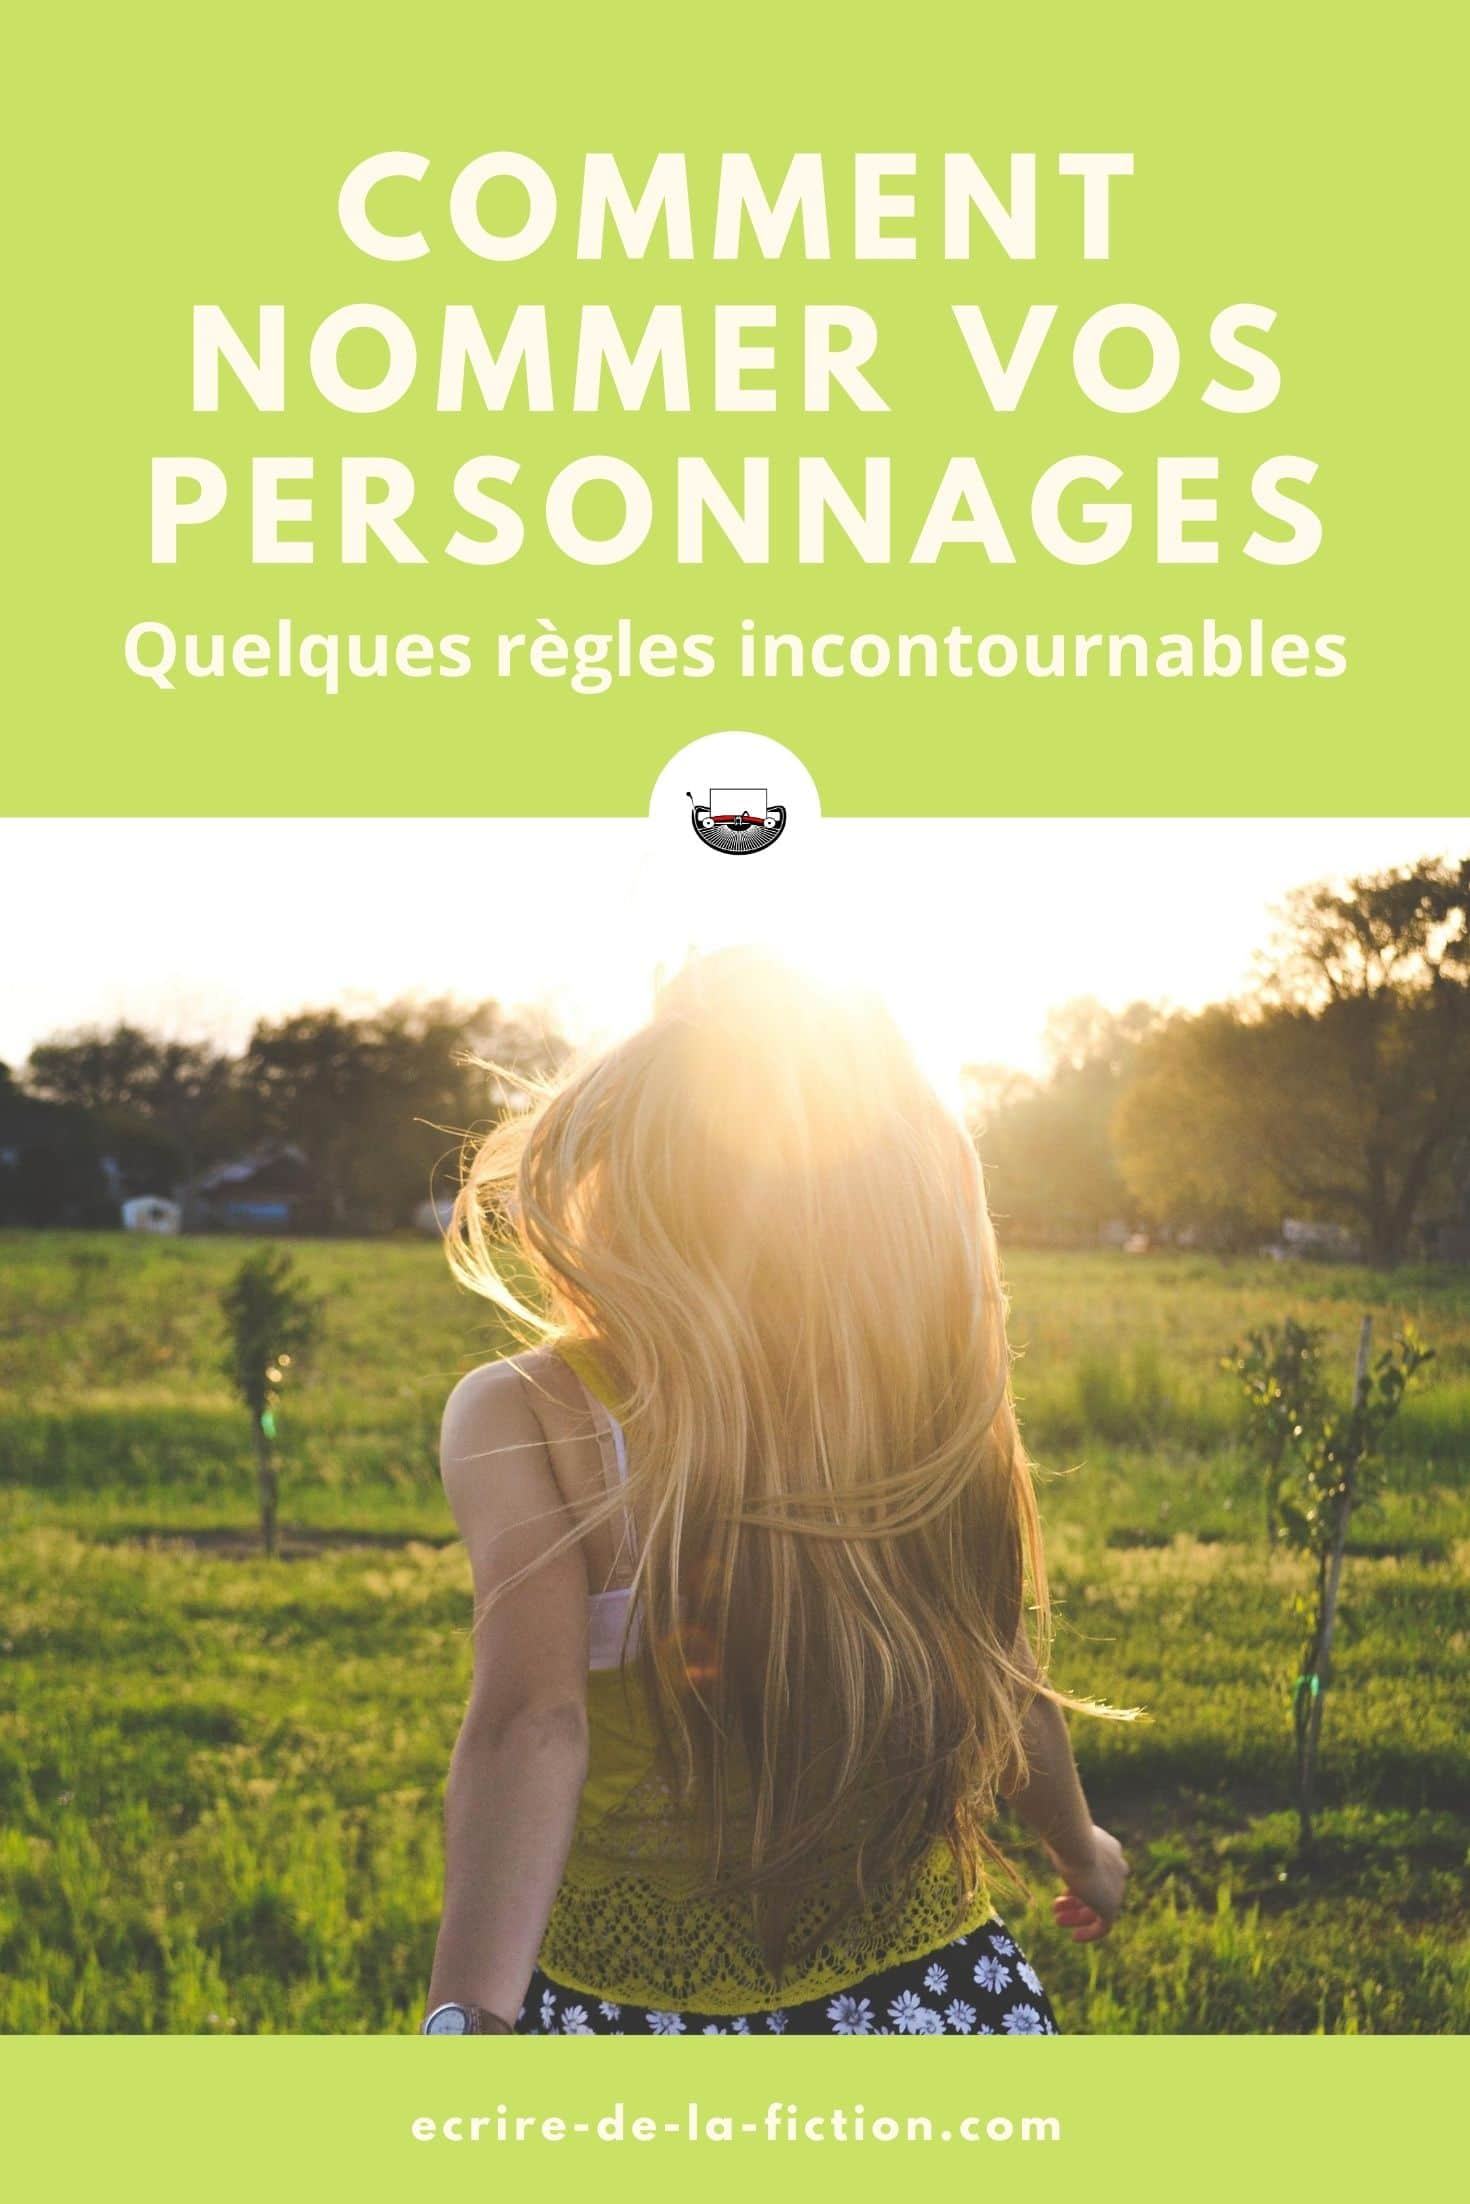 femme blonde dos epingle comment nommer personnages